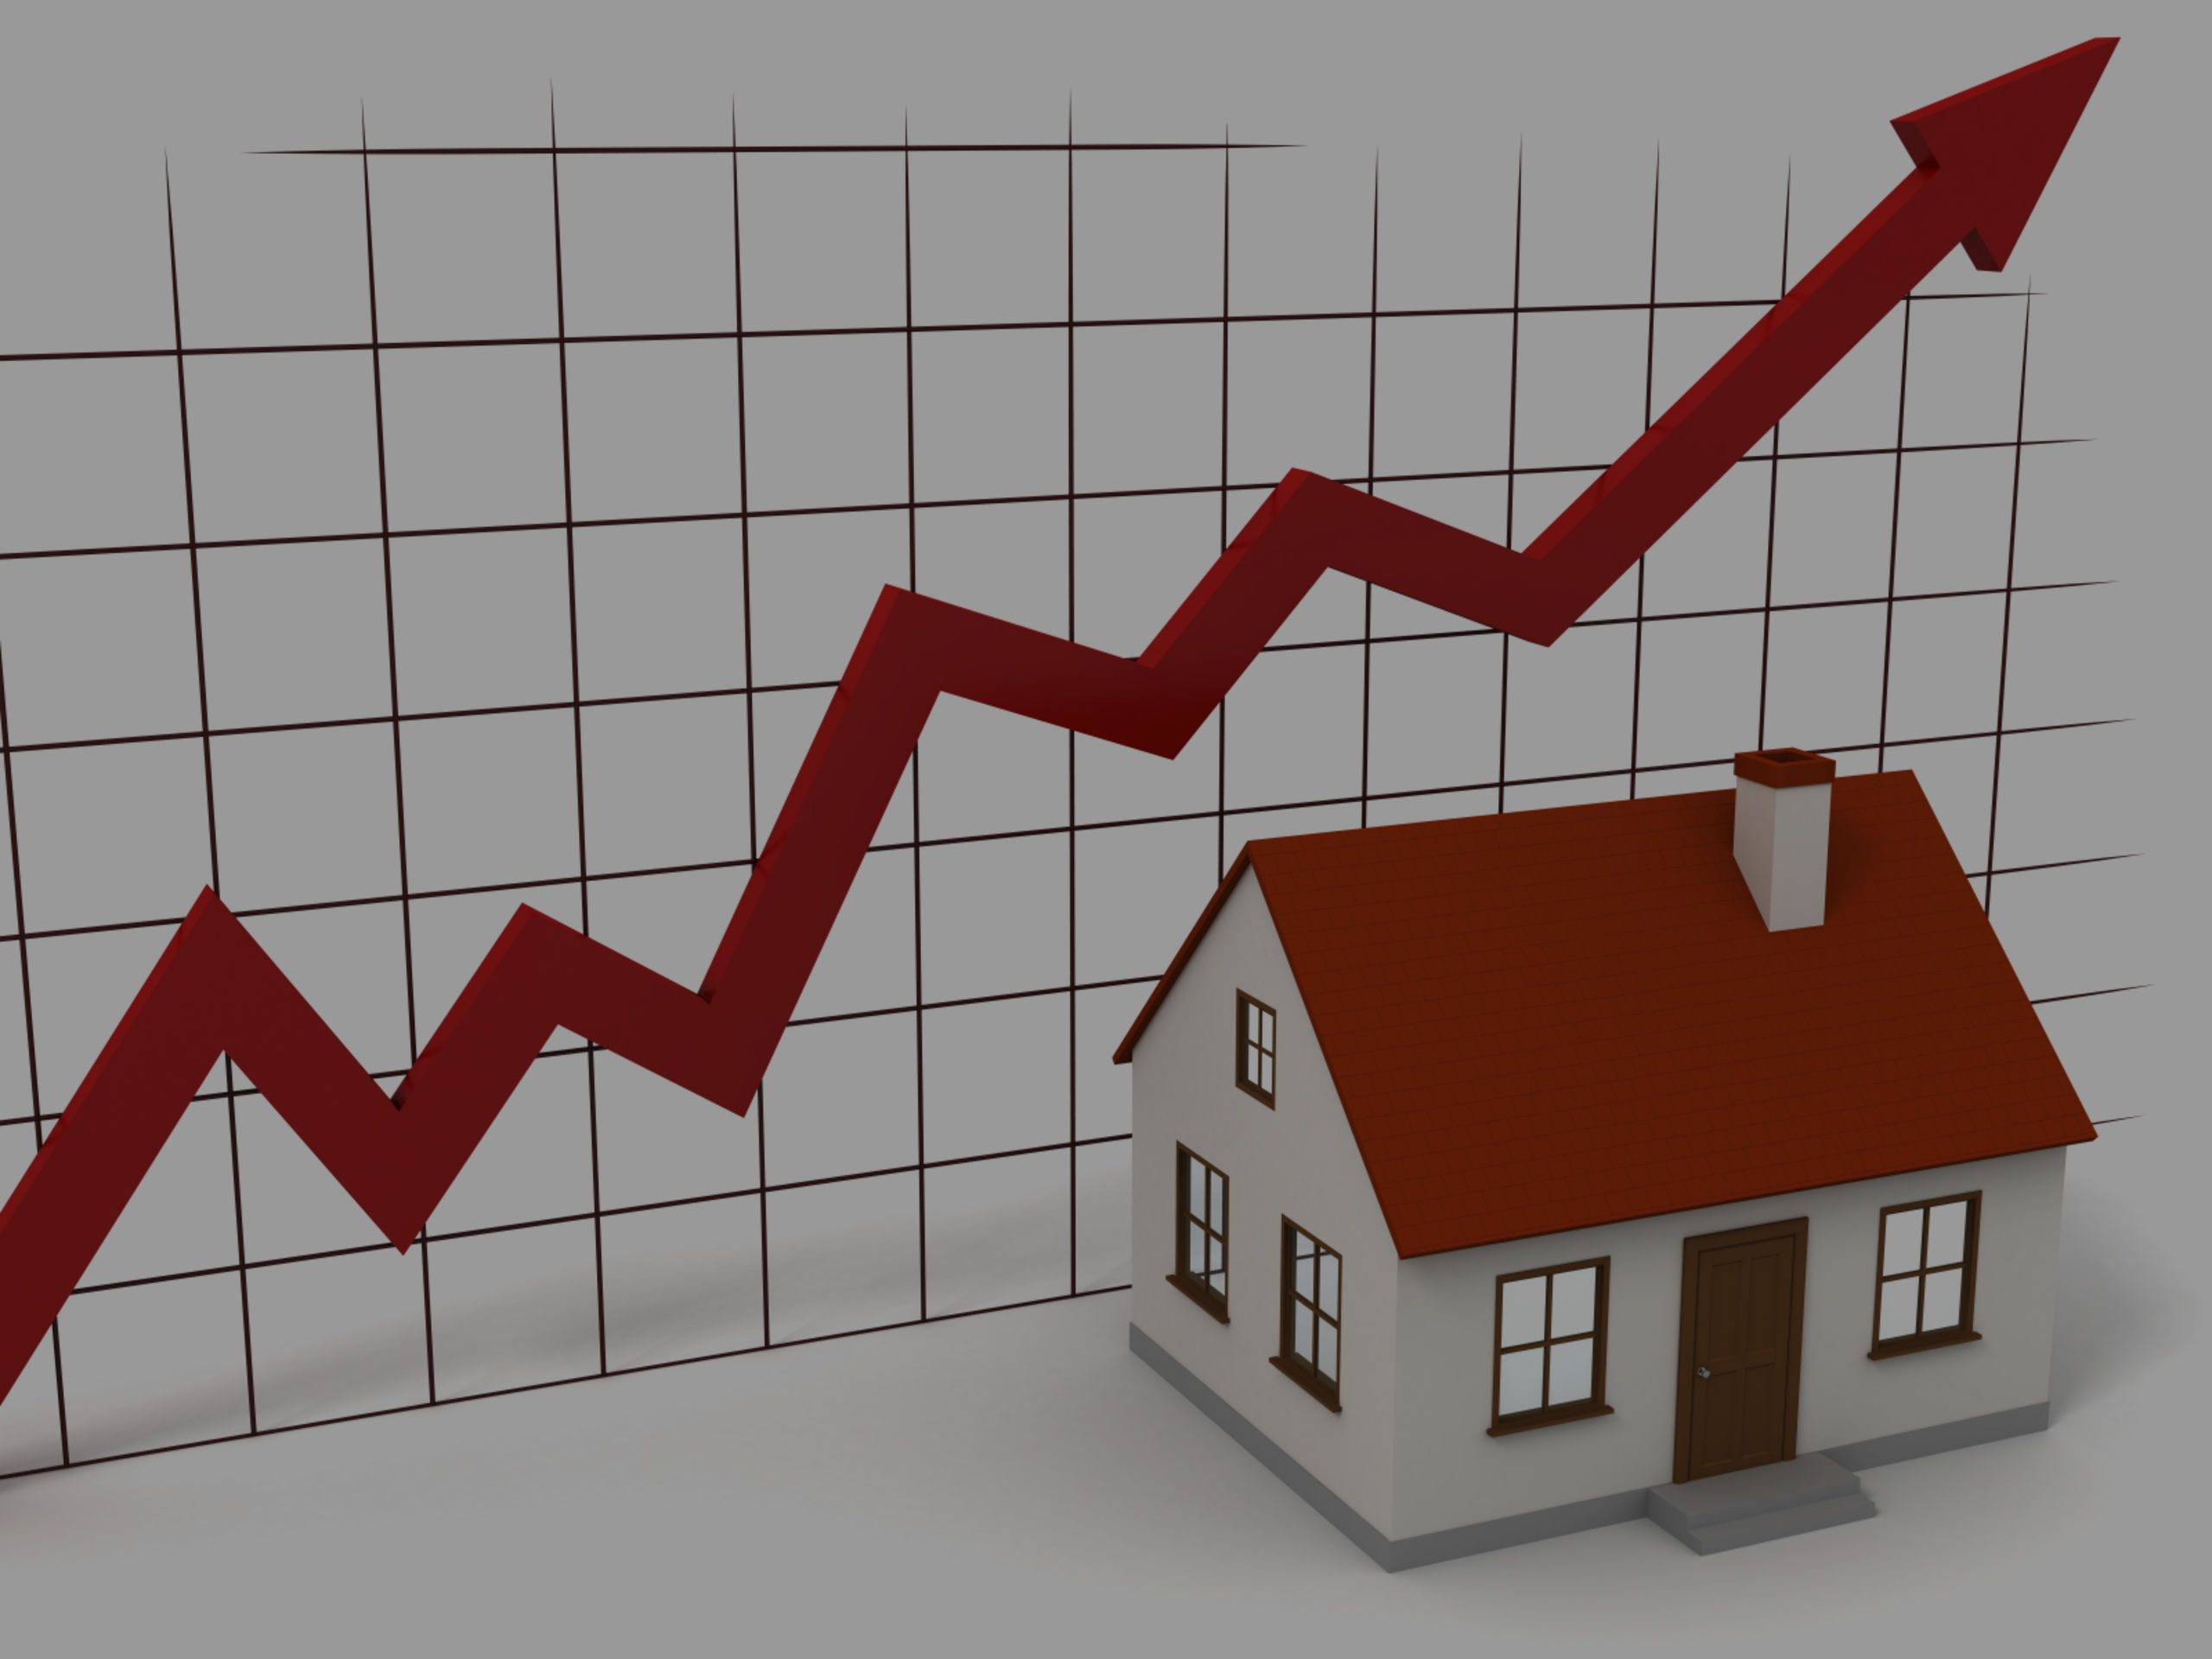 How to Choose the Best Las Vegas Investment Property